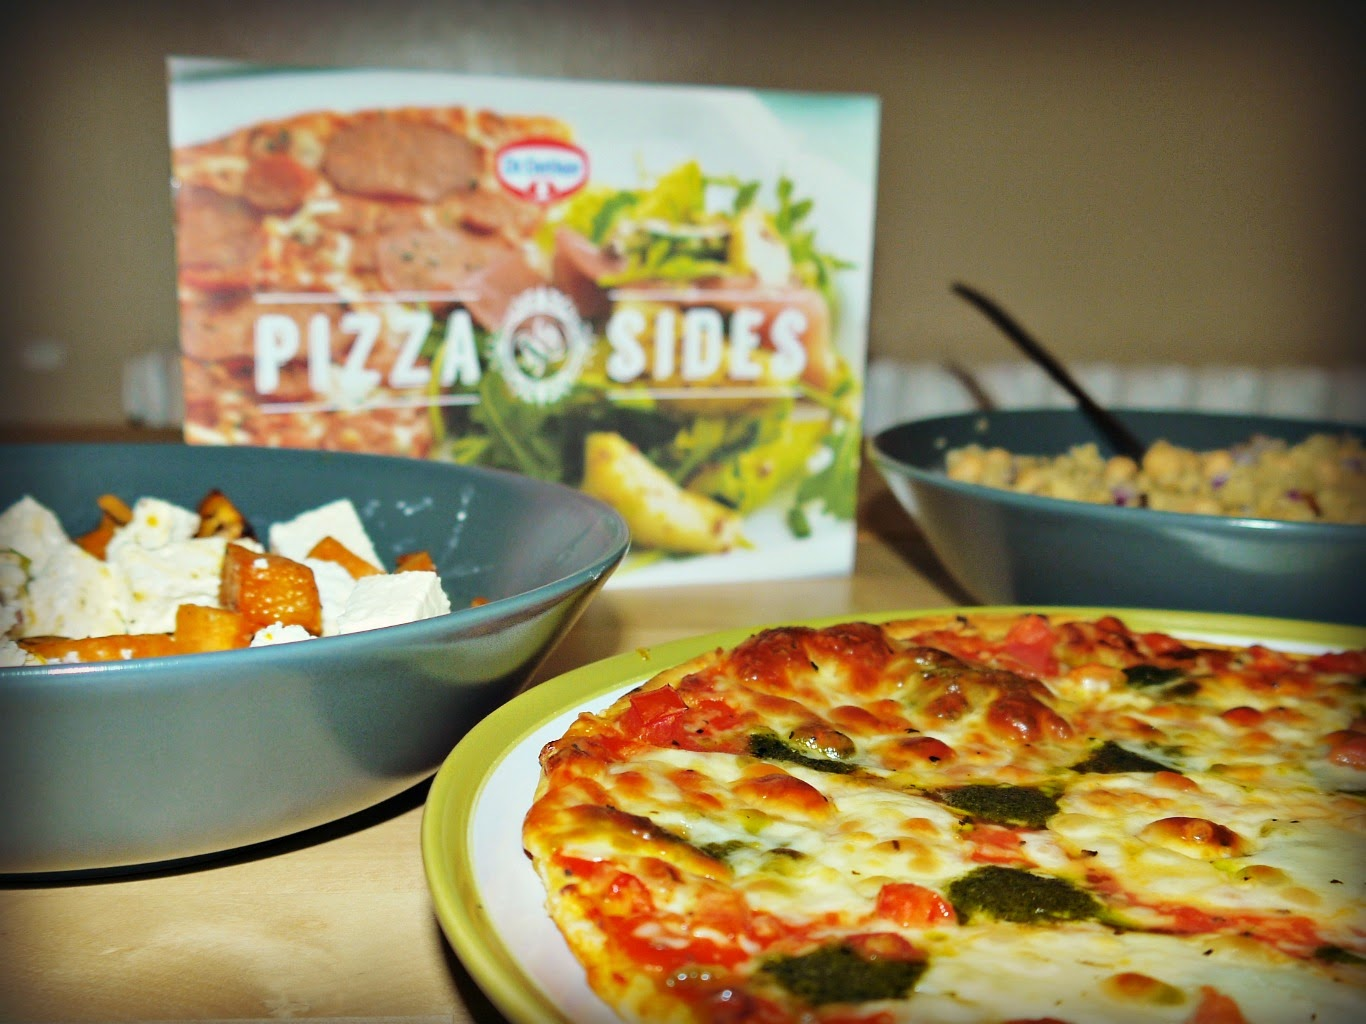 Dr Oetker Ristorante Pizza and Sides